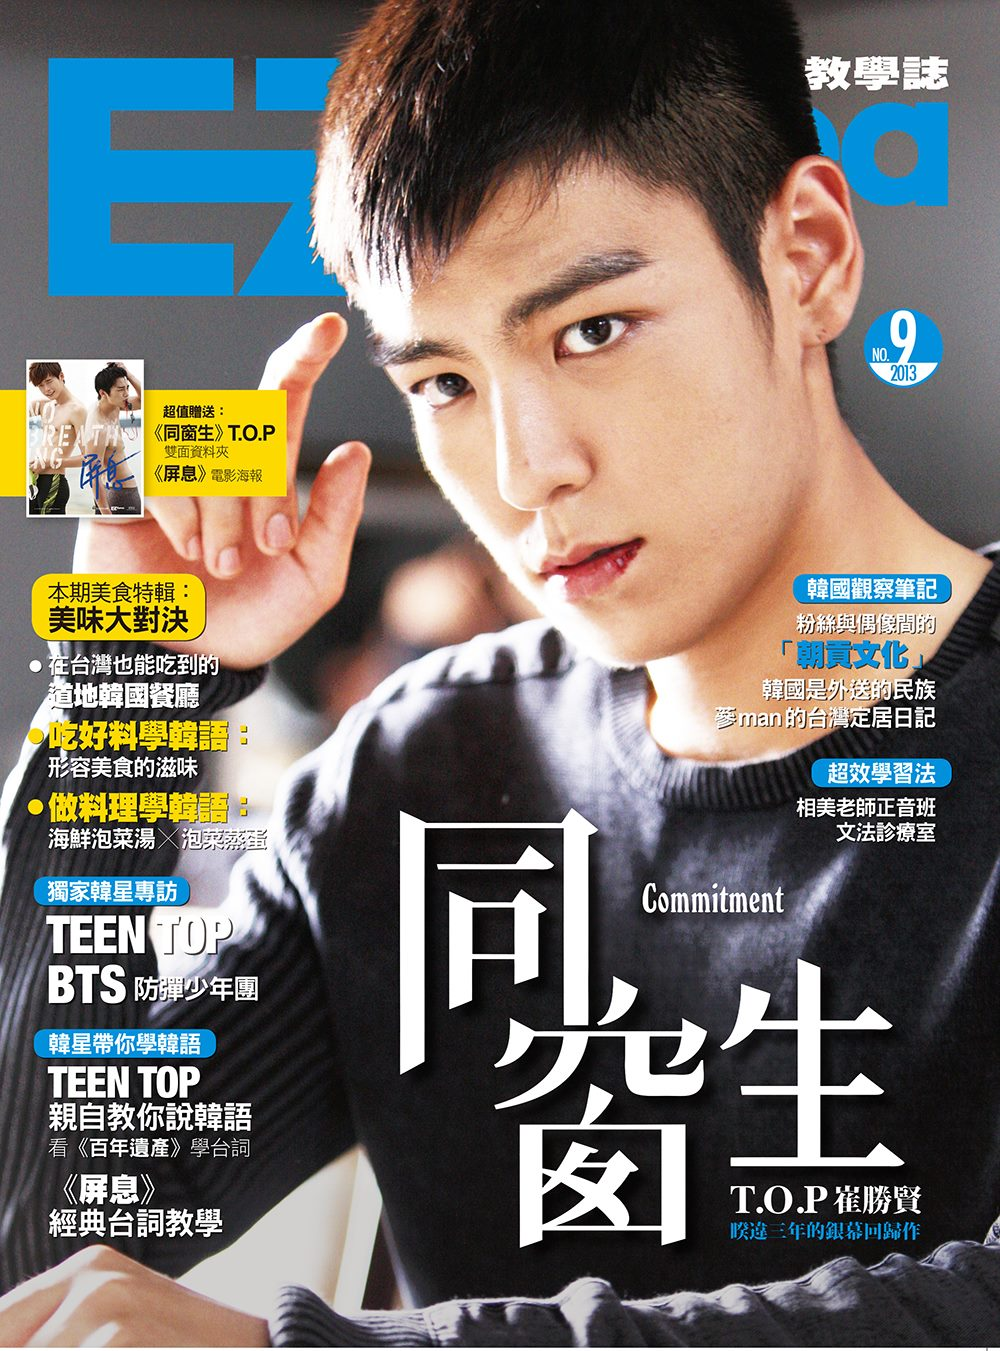 TOP - EZ Korea - Dec2013 - 01.jpg